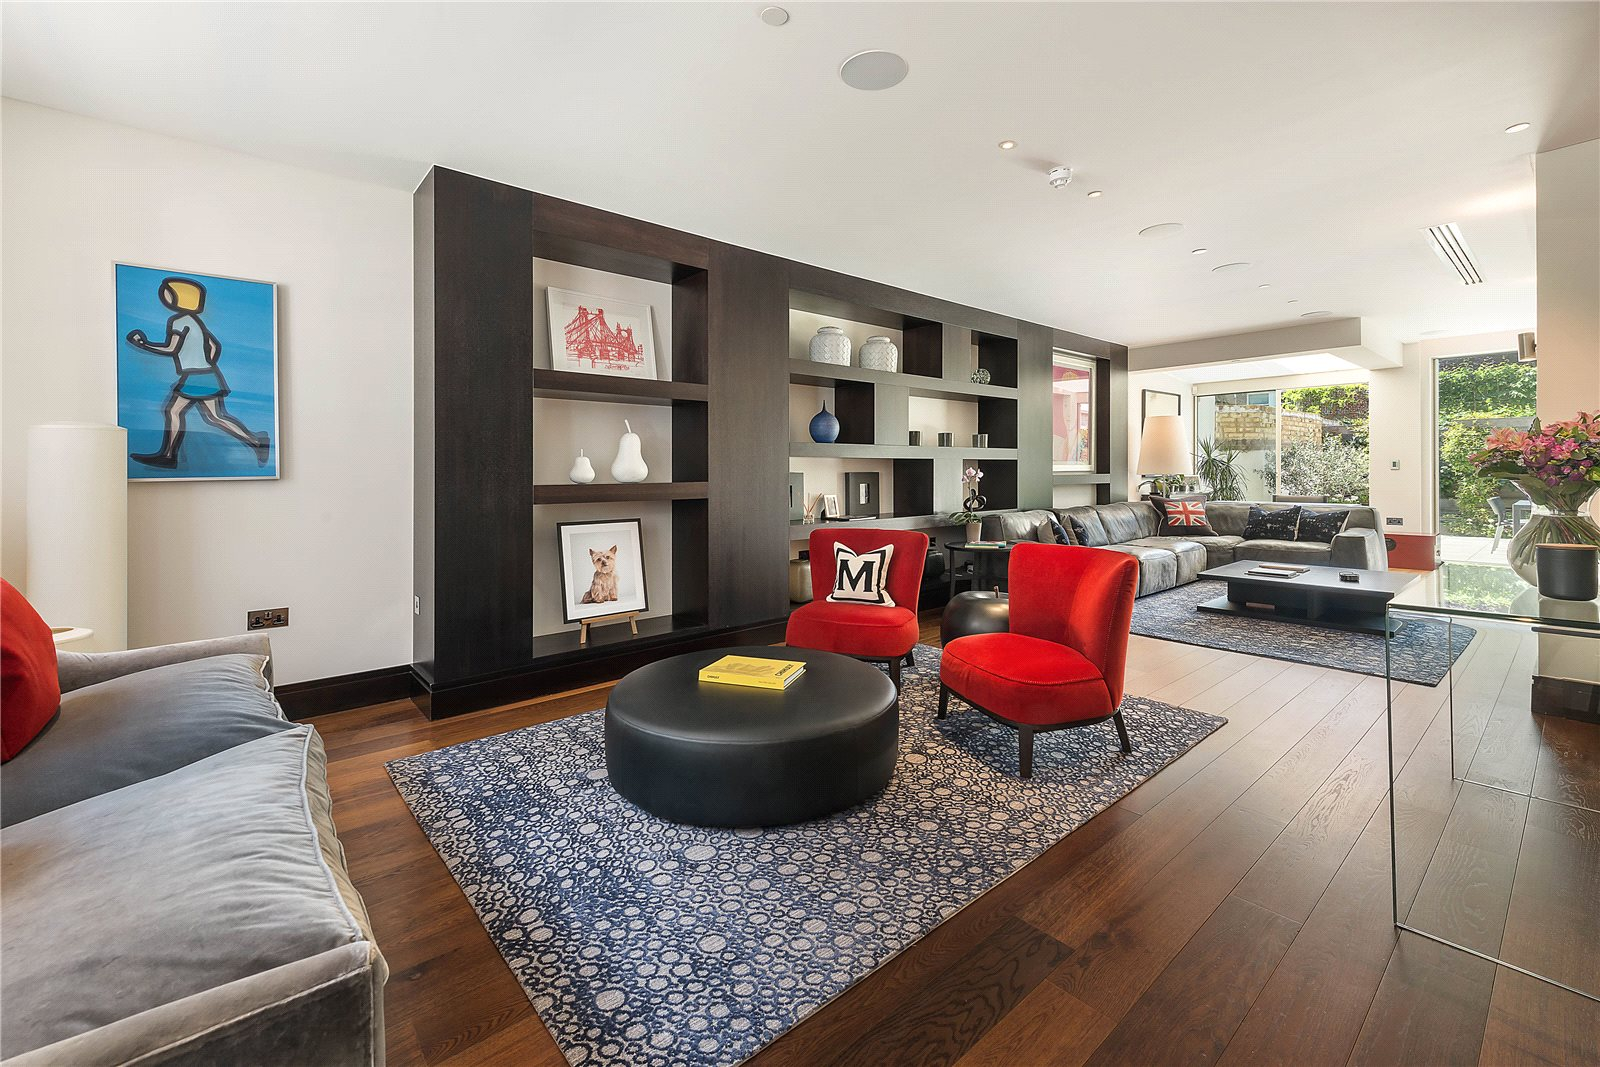 Chelsea - Real Estate and Apartments for Sale | Christie's